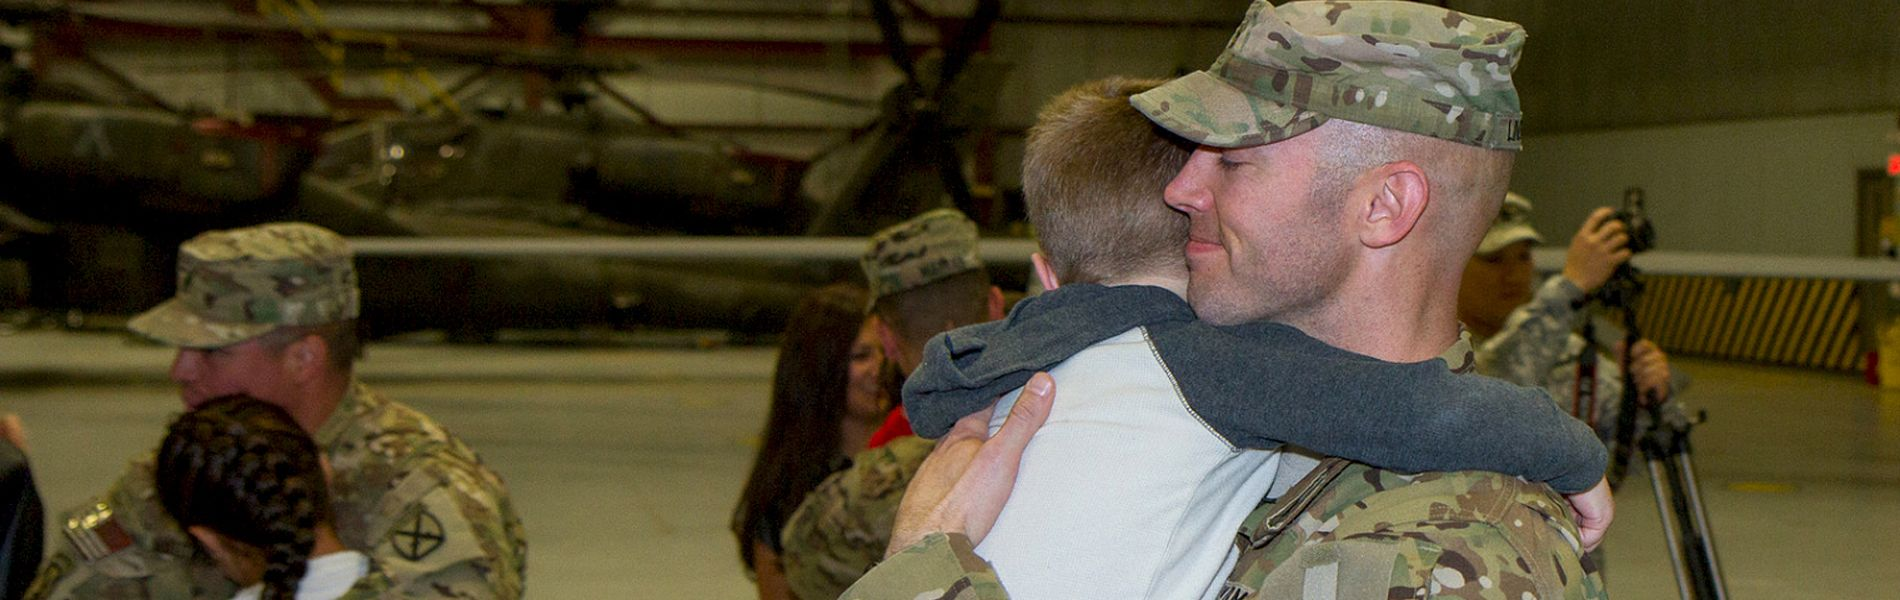 Father-Son-Deployment-Fort-Drum-Cropped